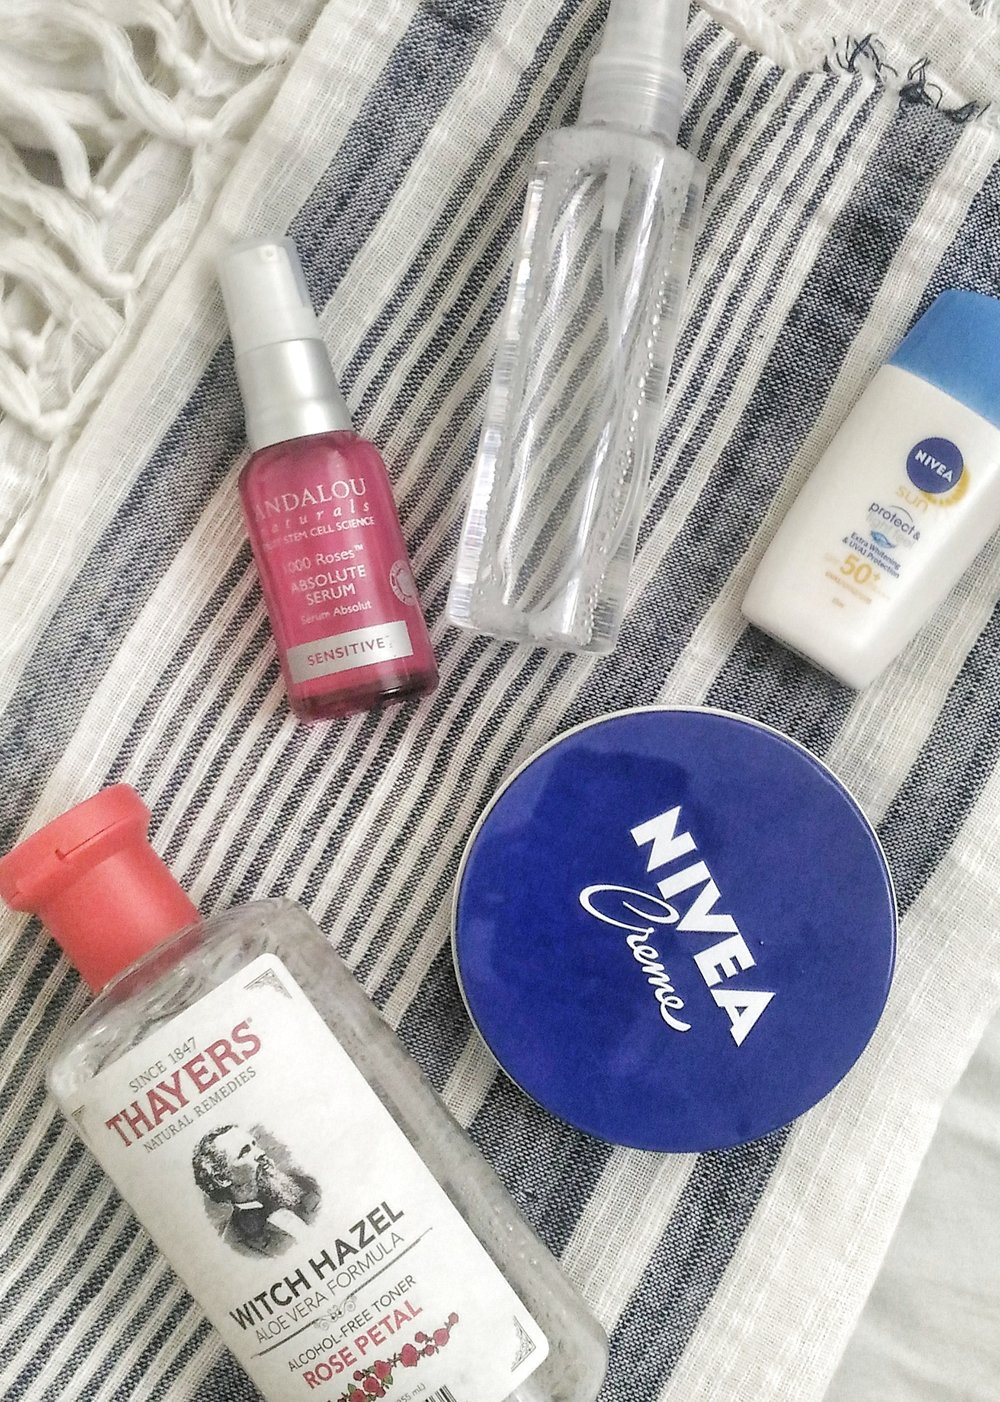 Cheap but effective! Thayers Witch Hazel Rose Petal Toner used as face mist, Nivea Creme, Nivea Protect and Light Feel, Andalou Naturals 1000 Roses Absolute Serum